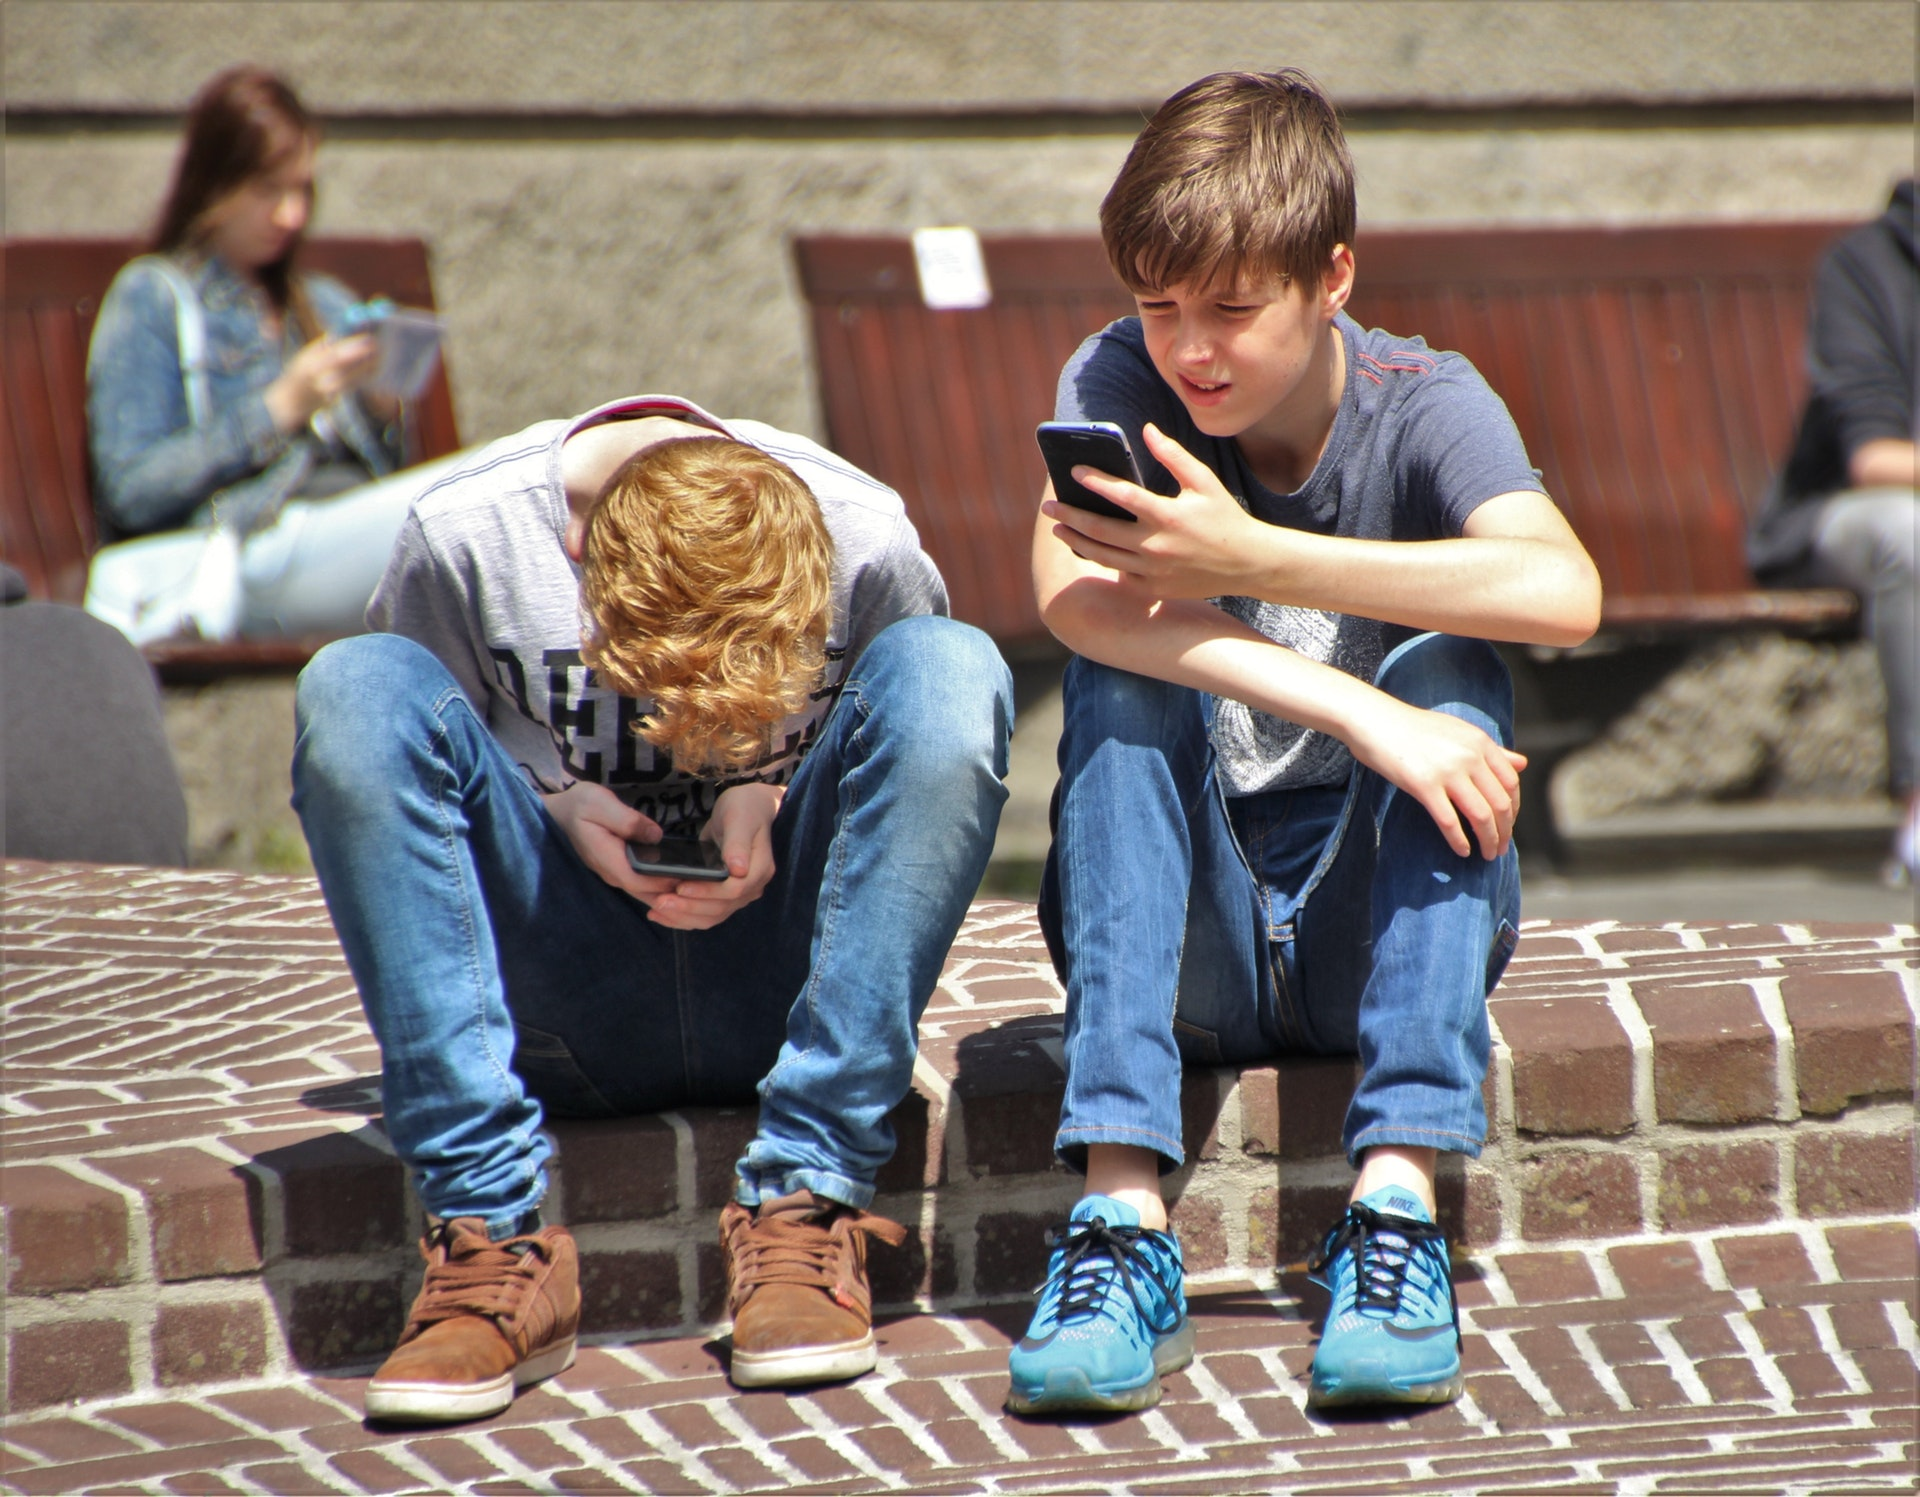 How Cell Phones Influence Adolescent Development